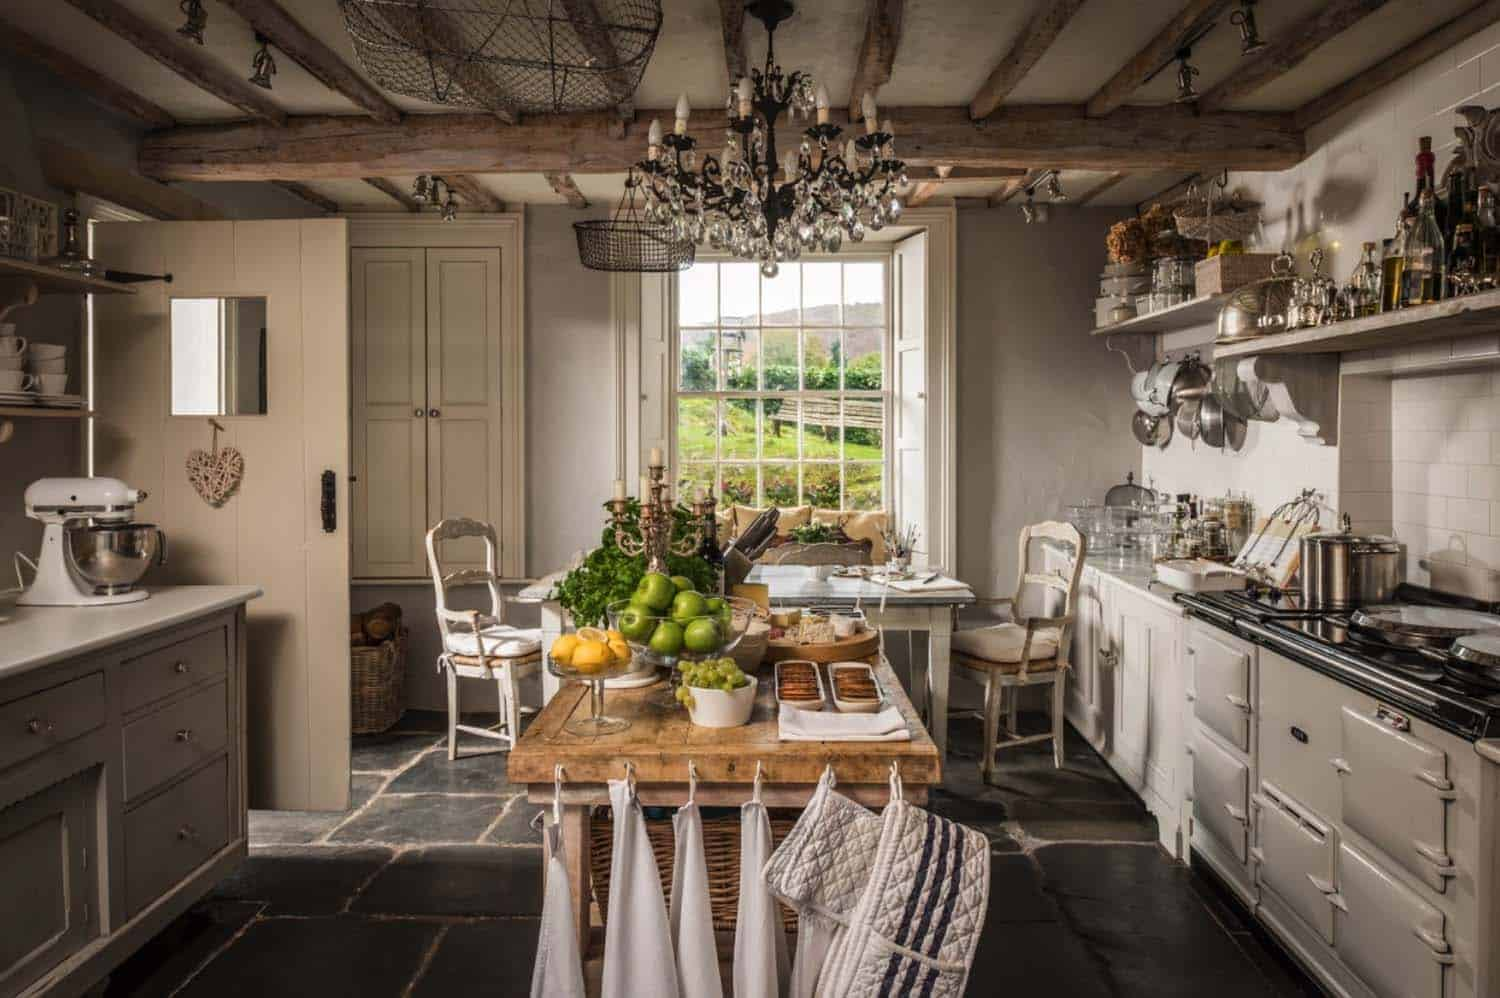 luxury-private-homestay-winterfell-cumbria-09-1-kindesign